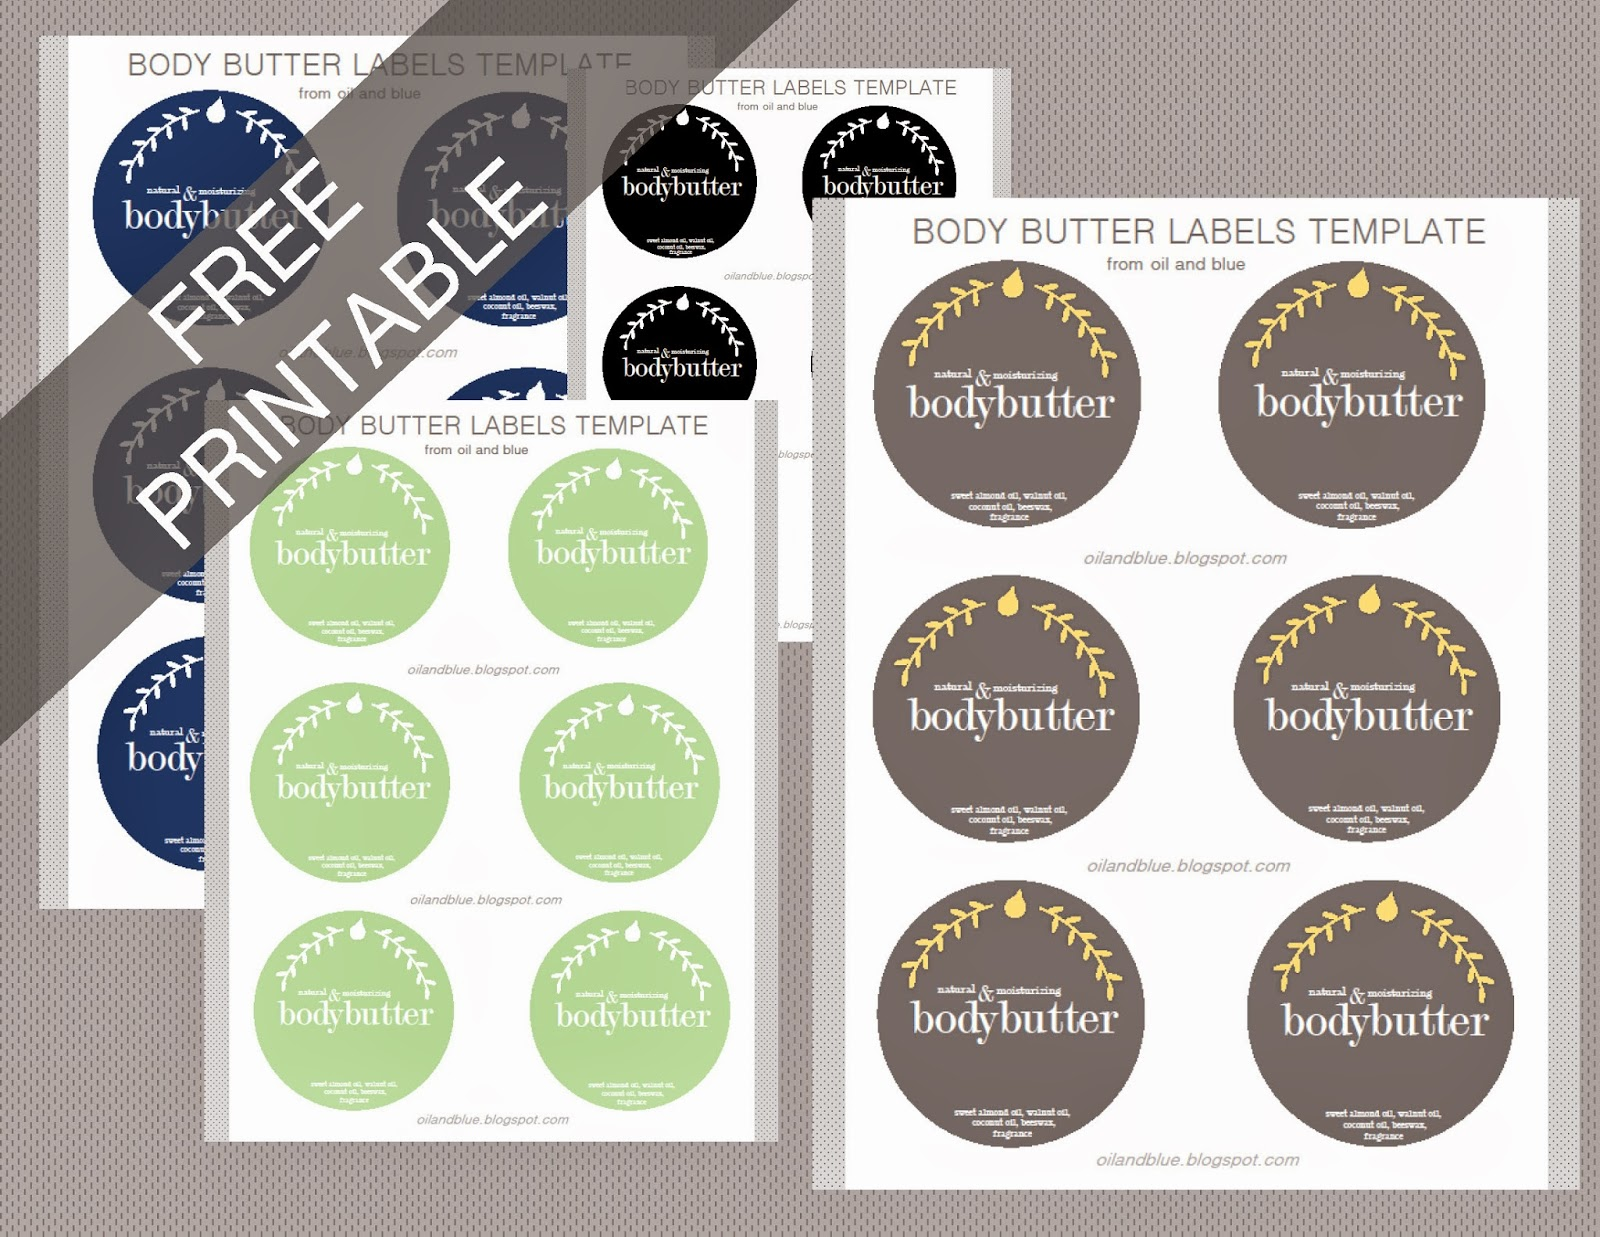 http://oilandblue.blogspot.com/2013/11/diy-perfumed-body-butter-labels-free.html